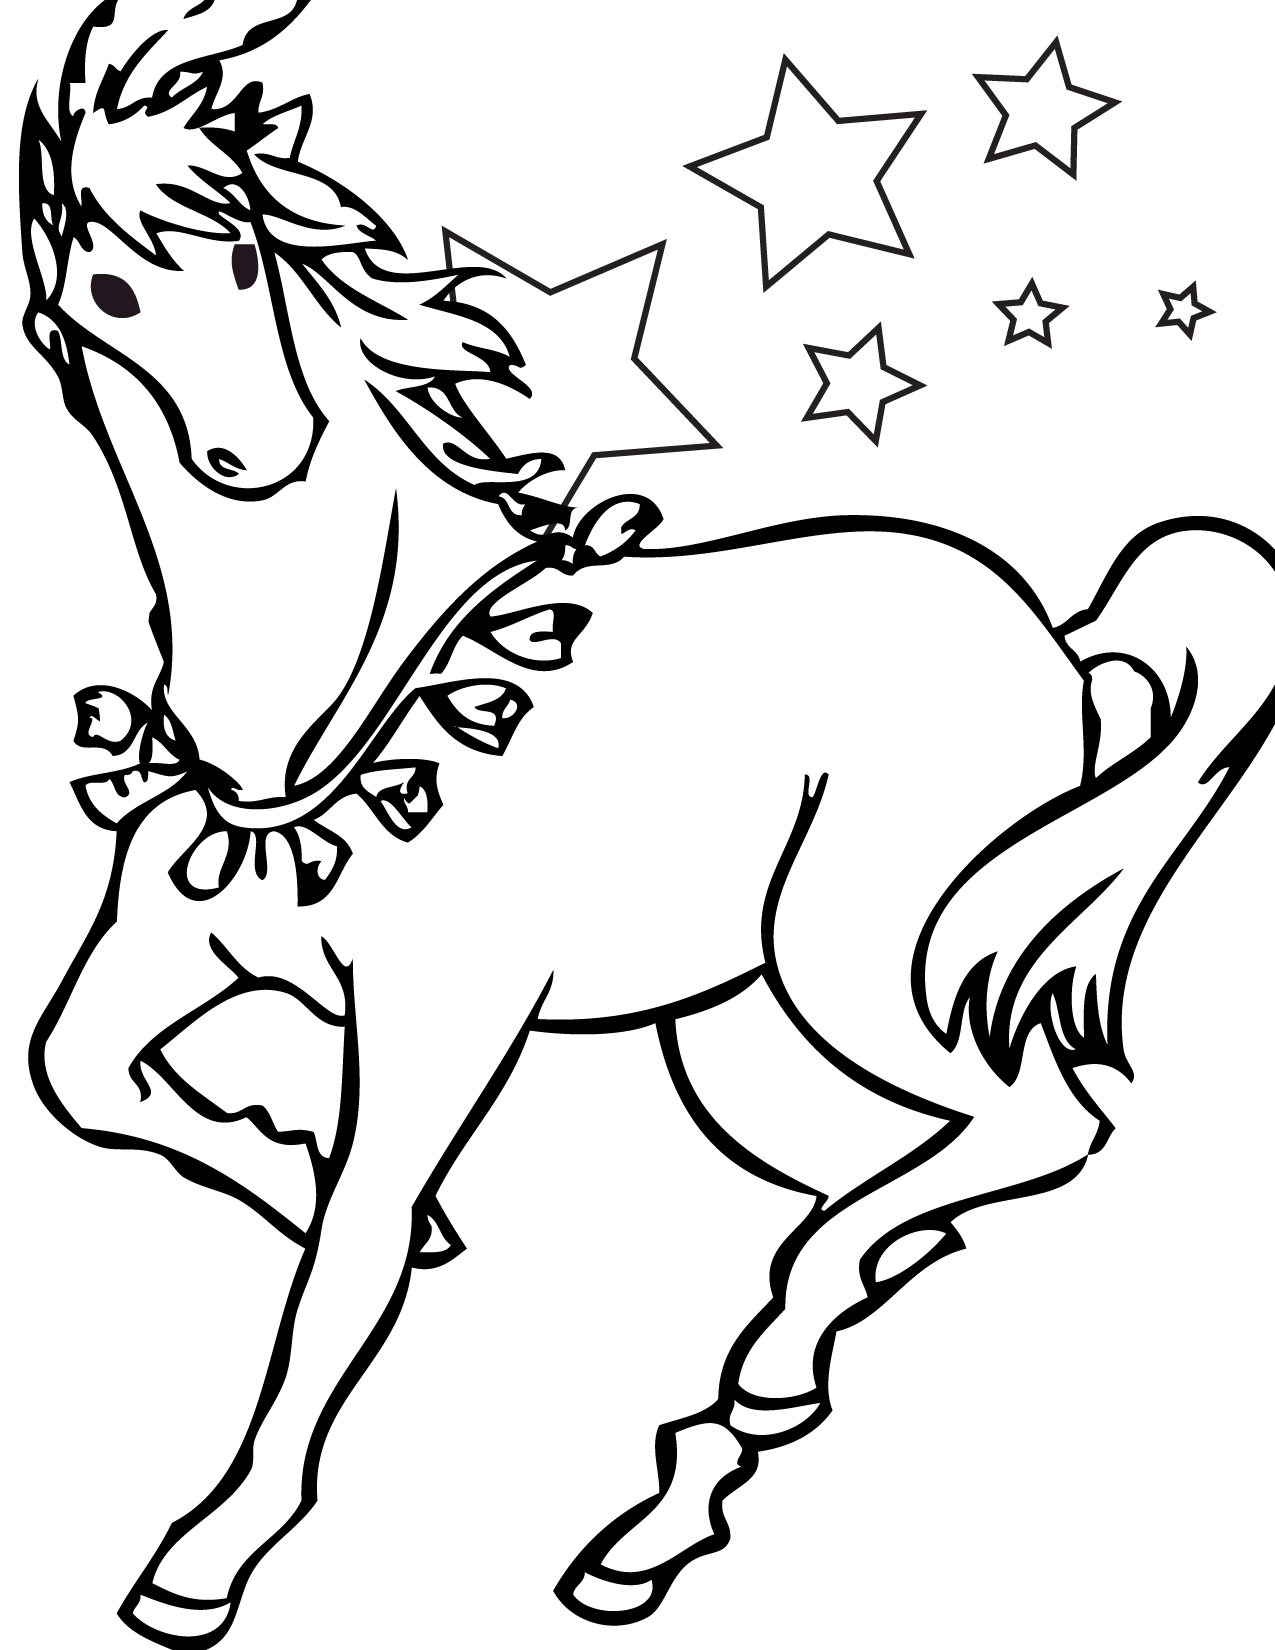 1275x1650 Free Printable Horse Coloring Pages For Kids